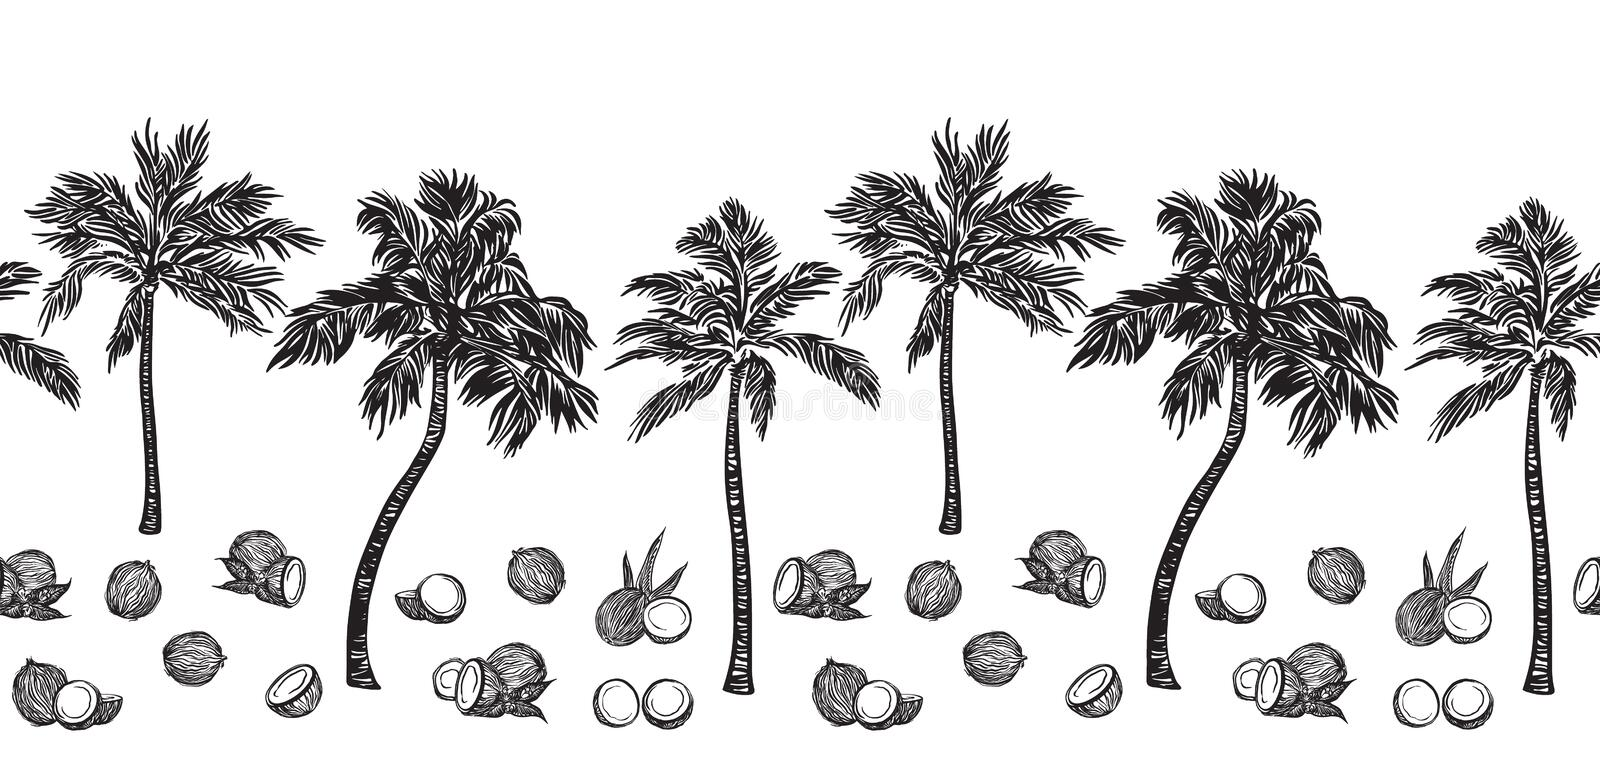 Black sketch palm tree and coconut outline horizontal seamless border. Vector drawing coco plants. Hand drawn endless illustration royalty free illustration